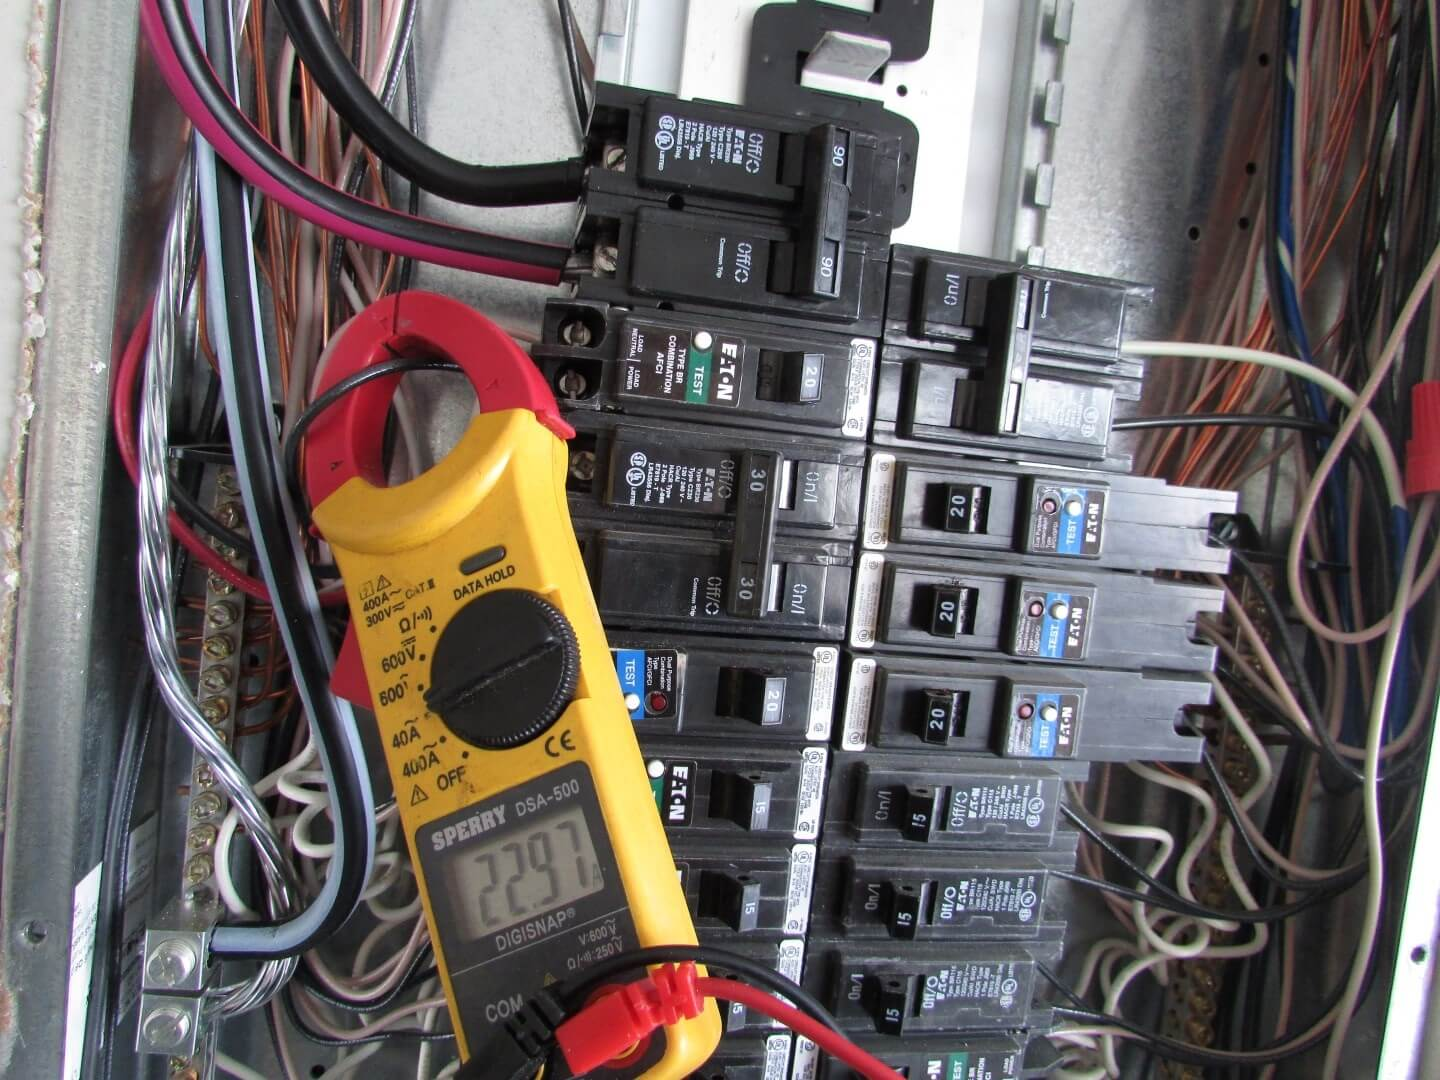 How To Use An Infrared Camera Find Overloaded Circuits Home Wiring Management Clamp Meter On Circuit Breaker